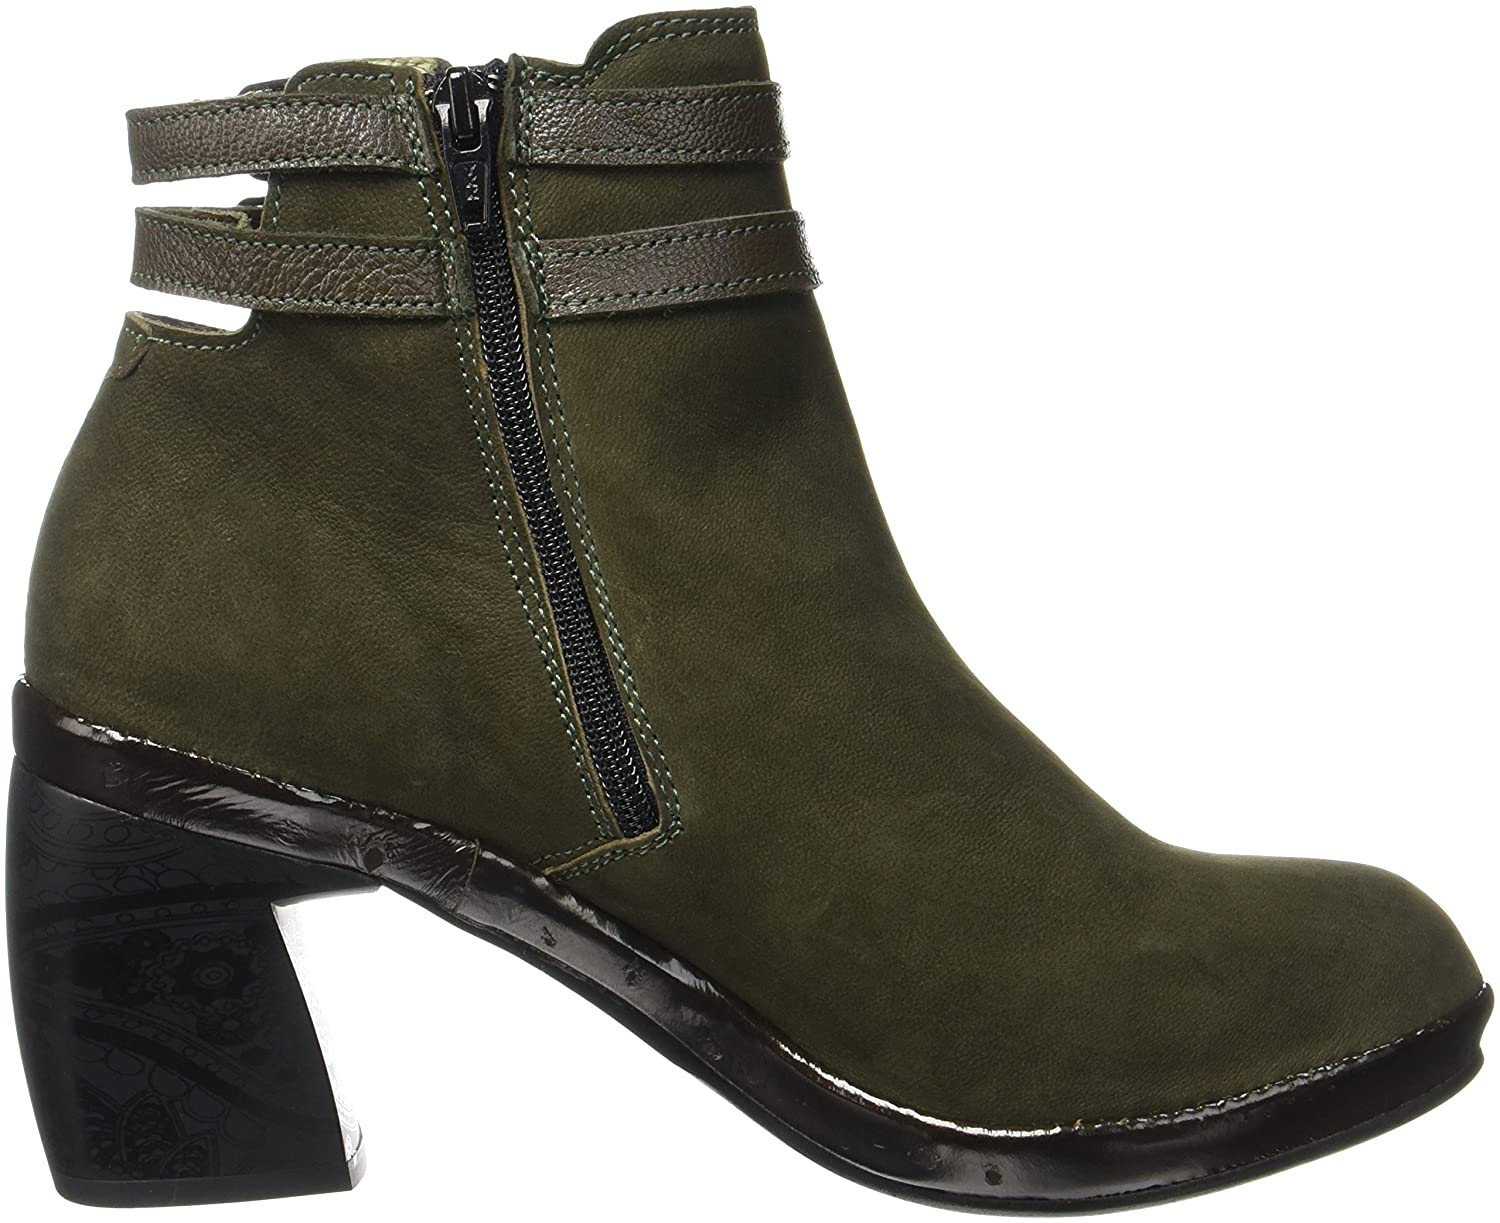 FLY London Damen (Seaweed) Cure786fly Stiefel Braun (Seaweed) Damen aafb61